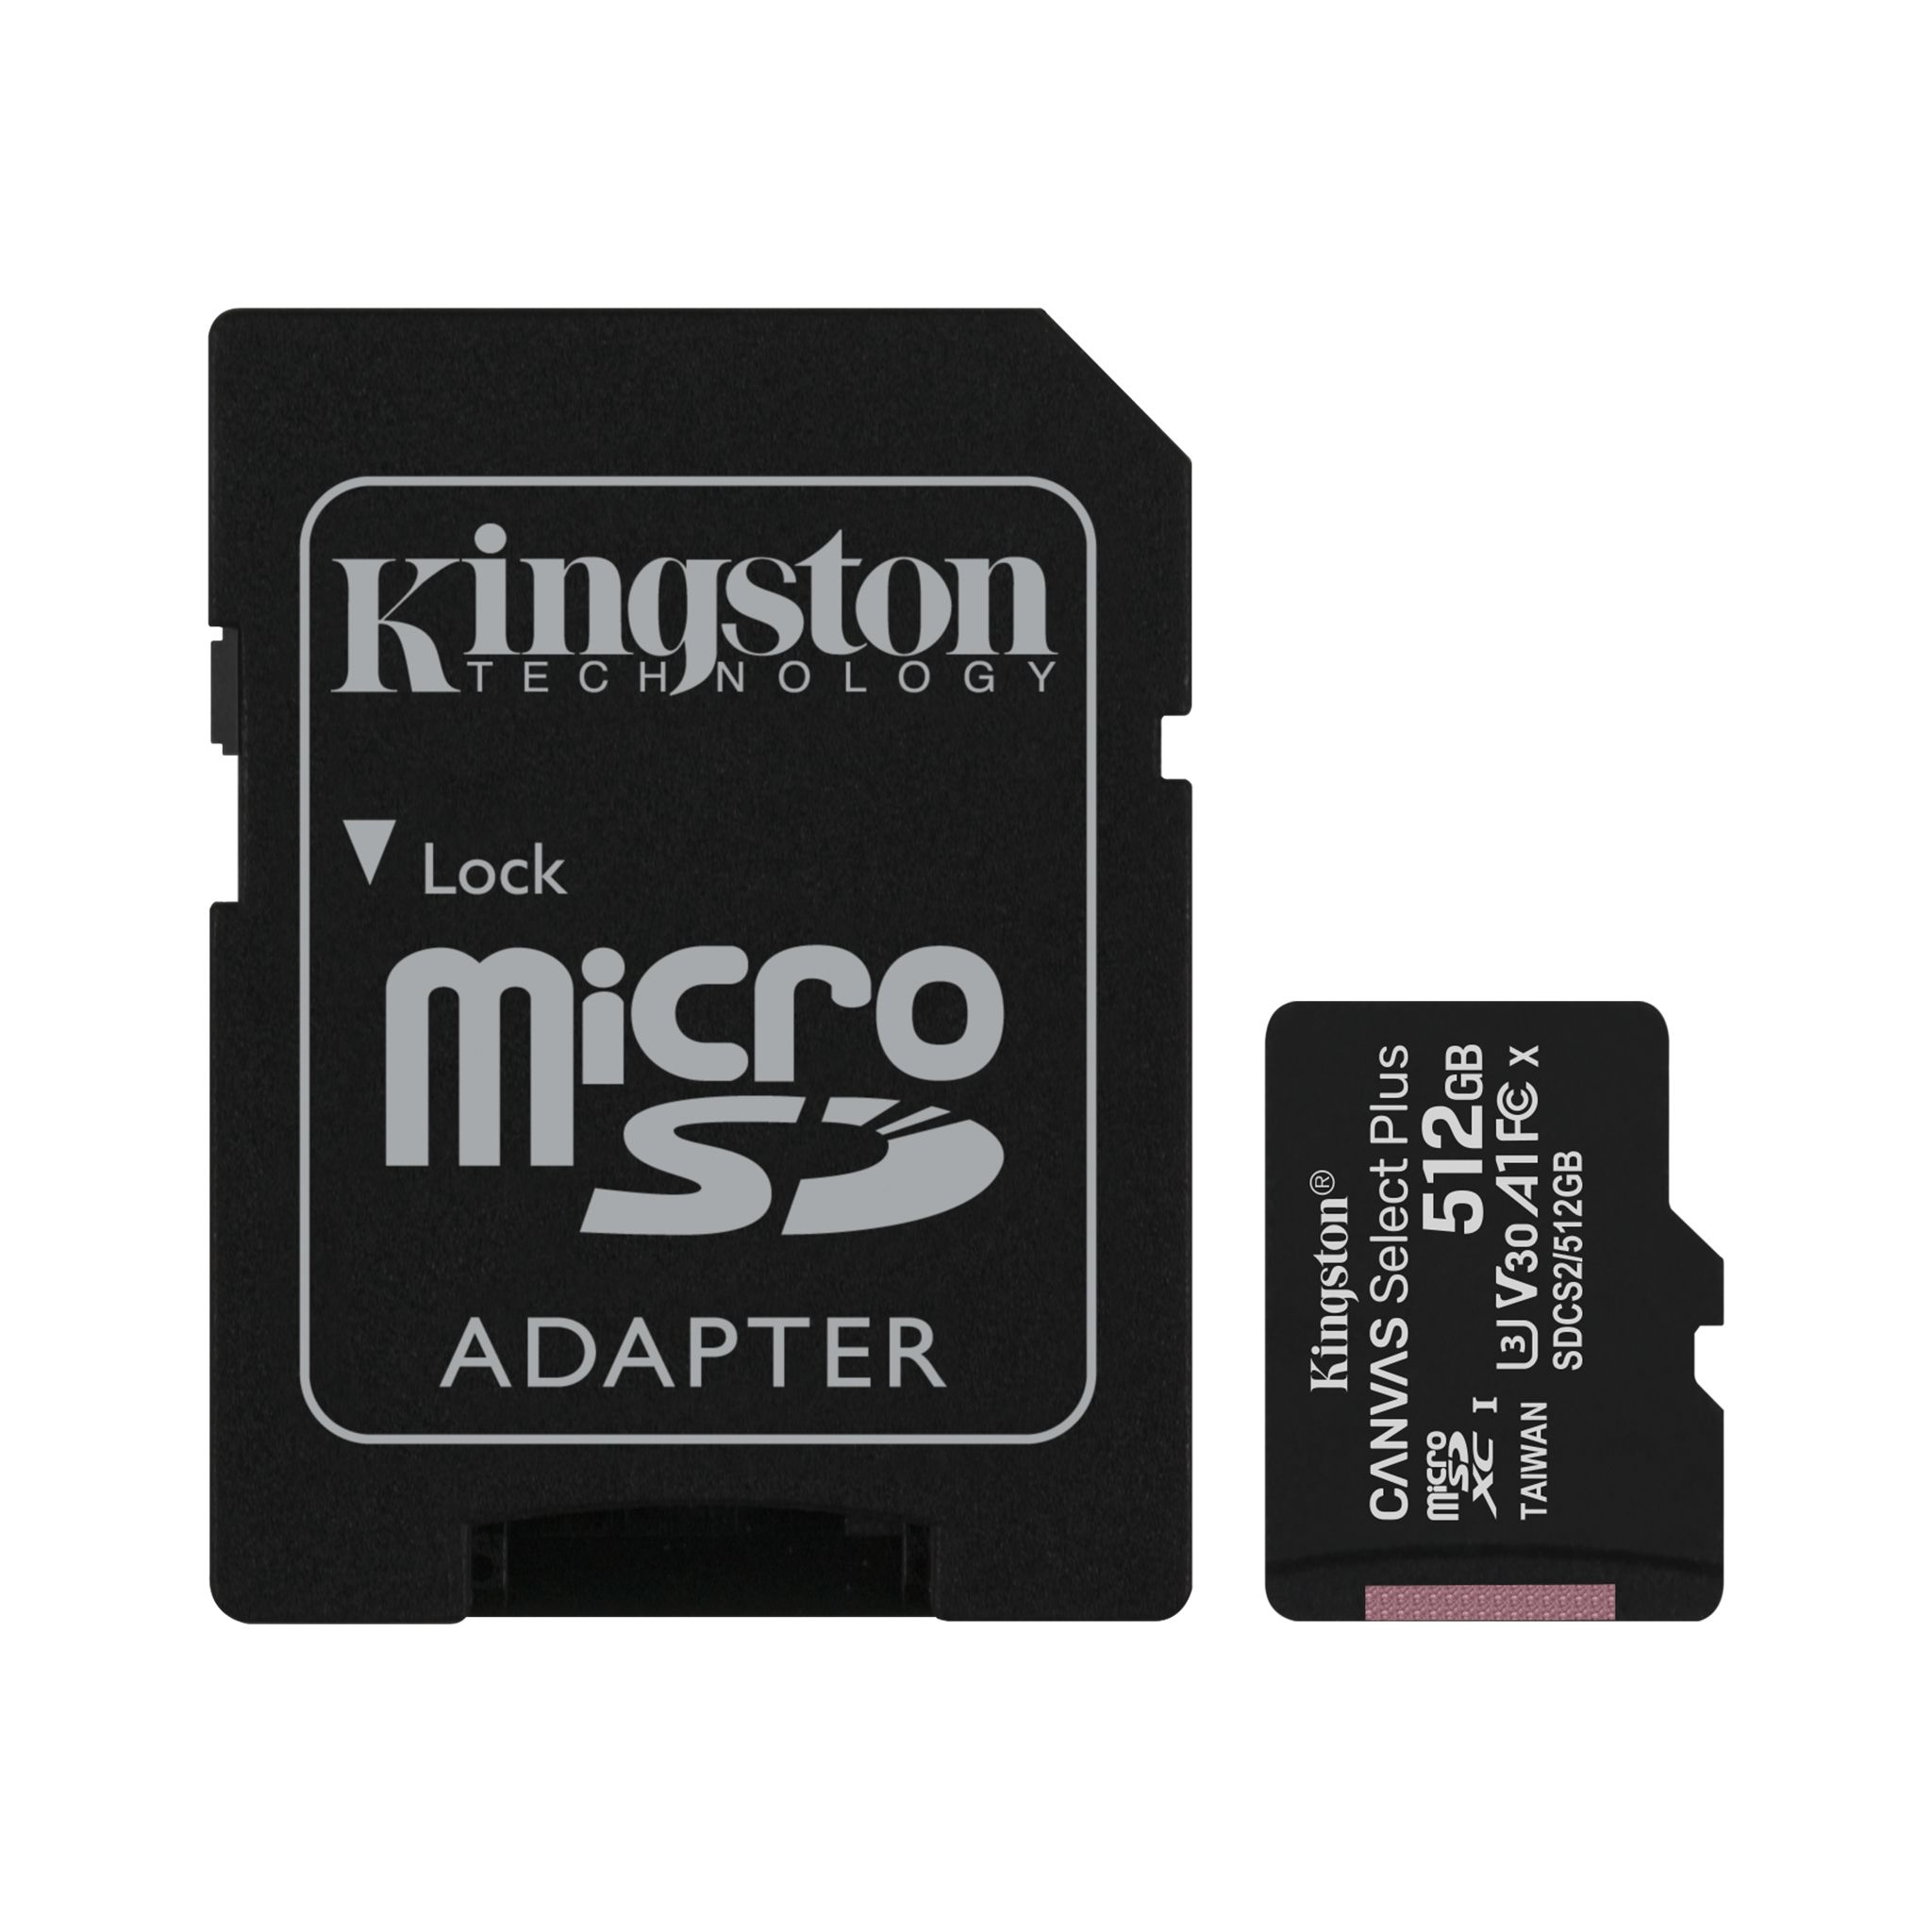 Kingston 512GB LG G Pad X 8.0 MicroSDXC Canvas Select Plus Card Verified by SanFlash. 100MBs Works with Kingston